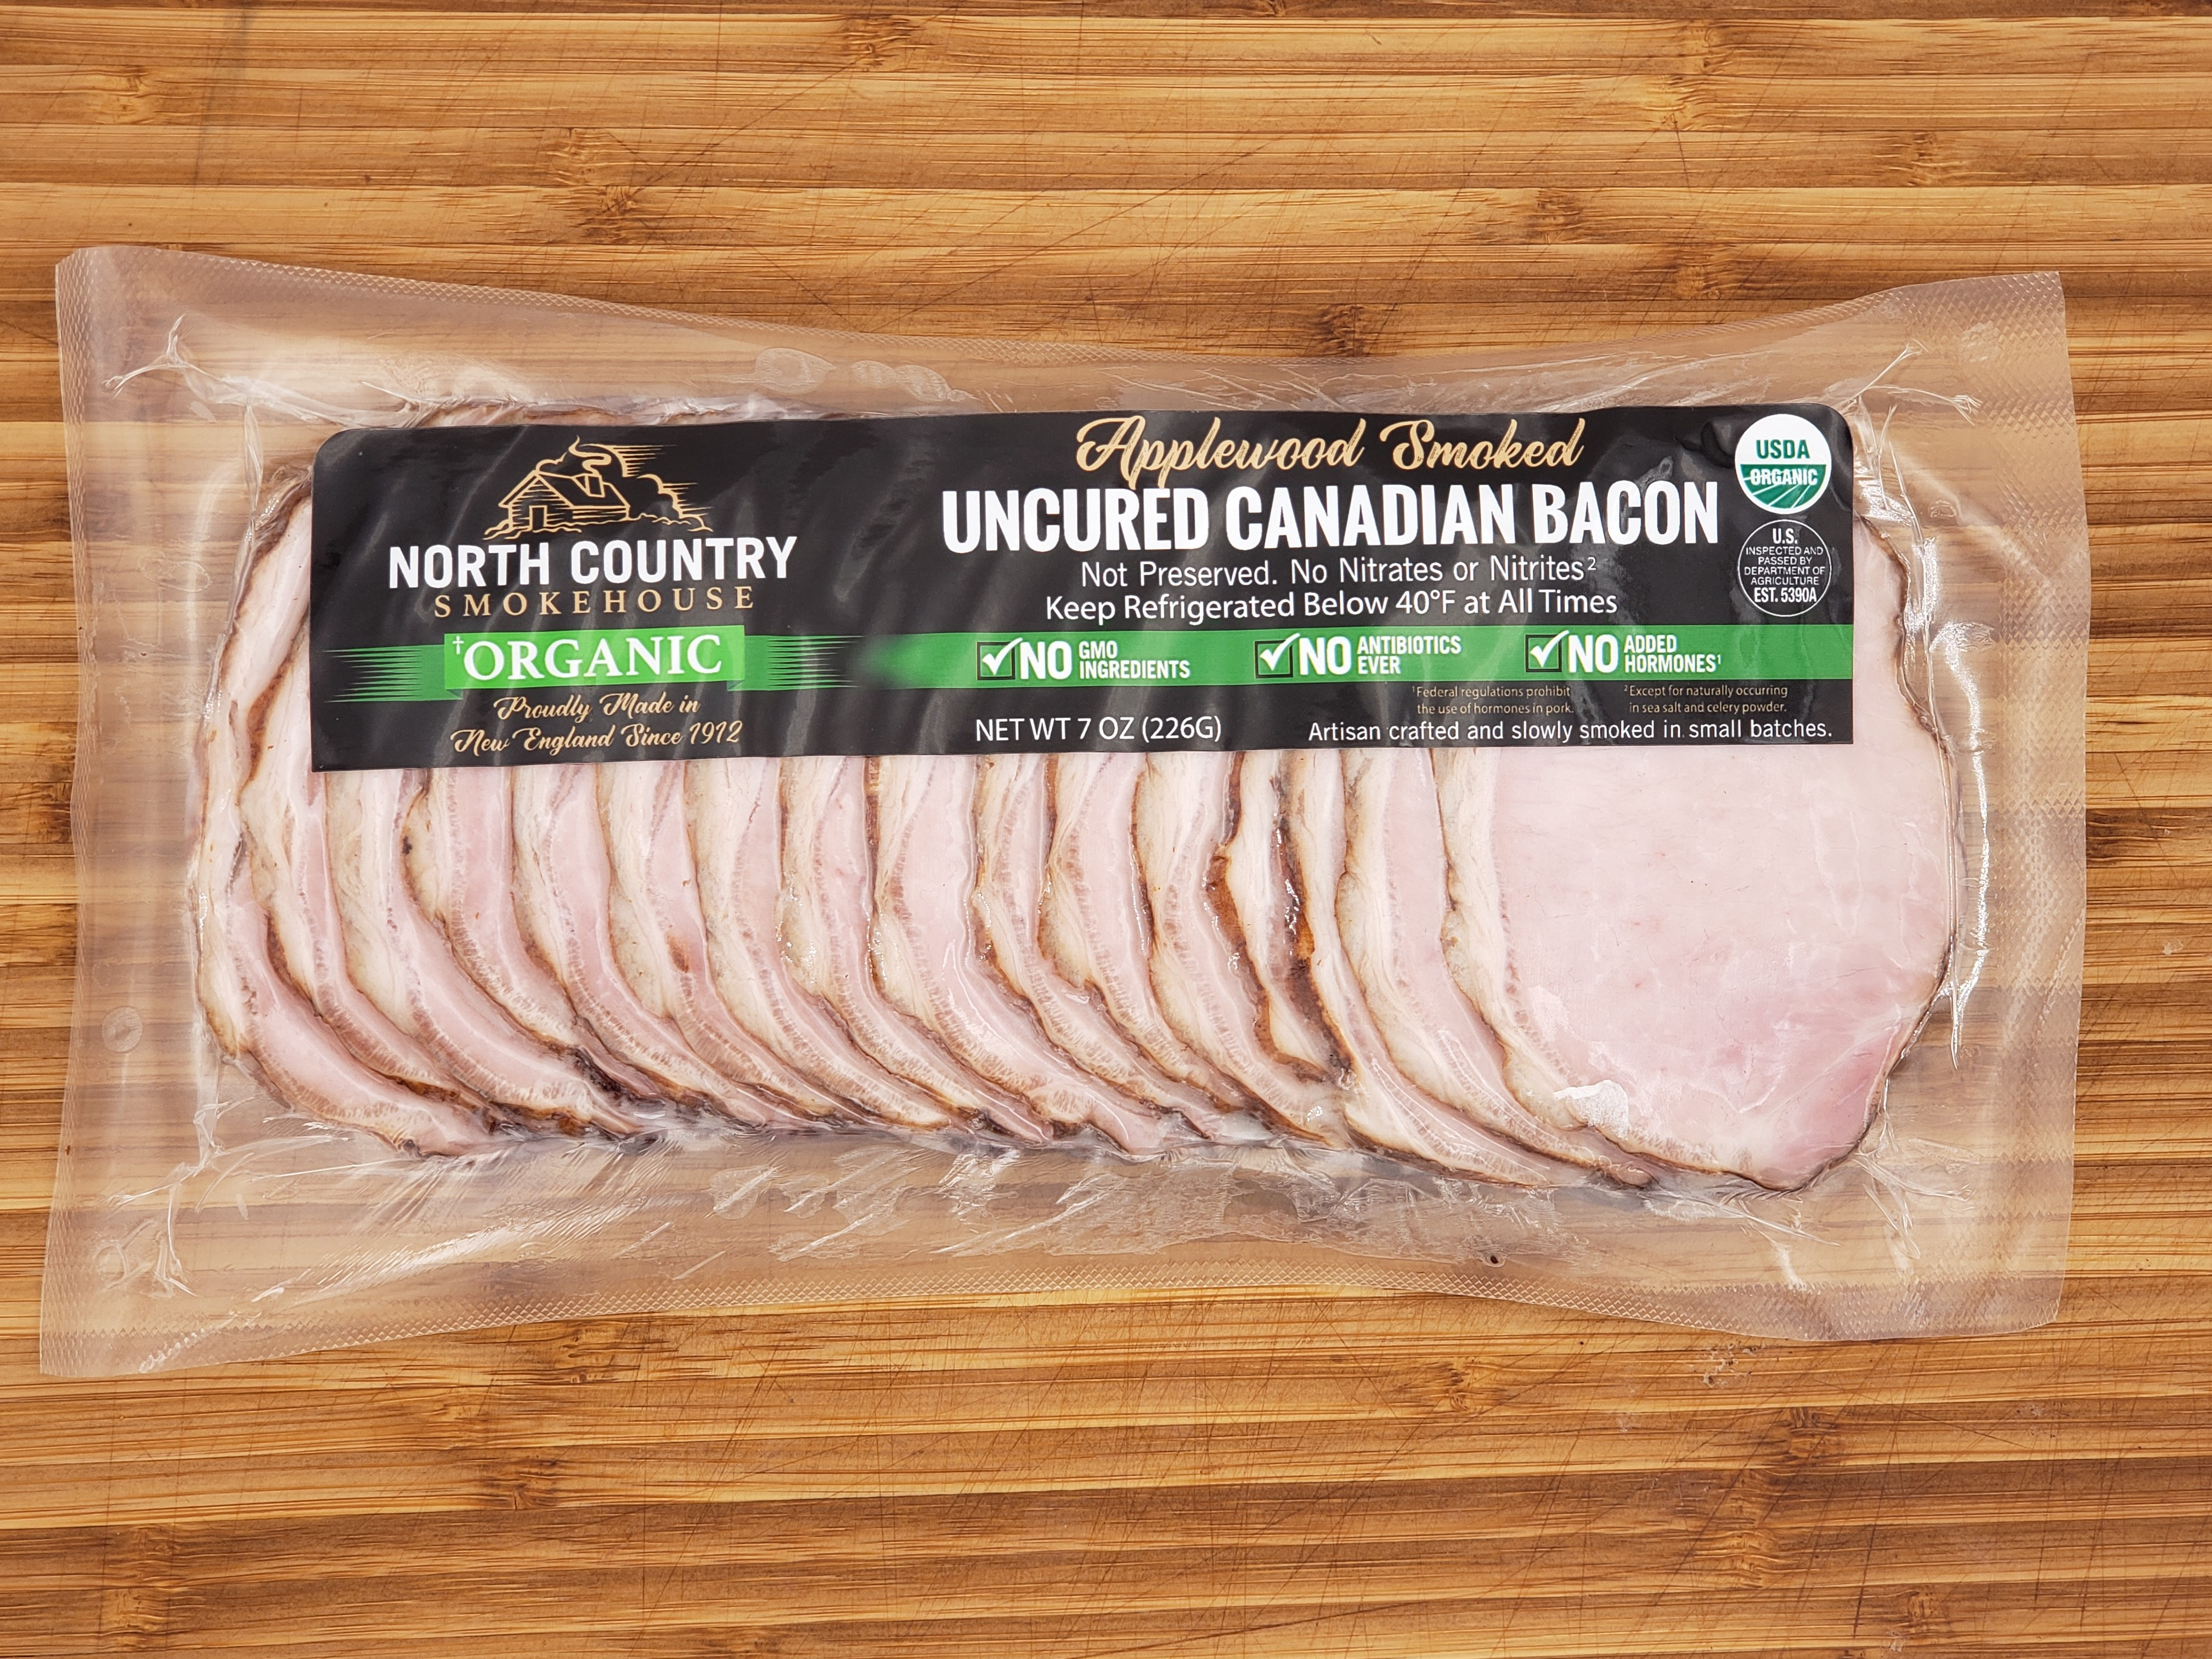 North Country Smokehouse Launches Organic Canadian Bacon